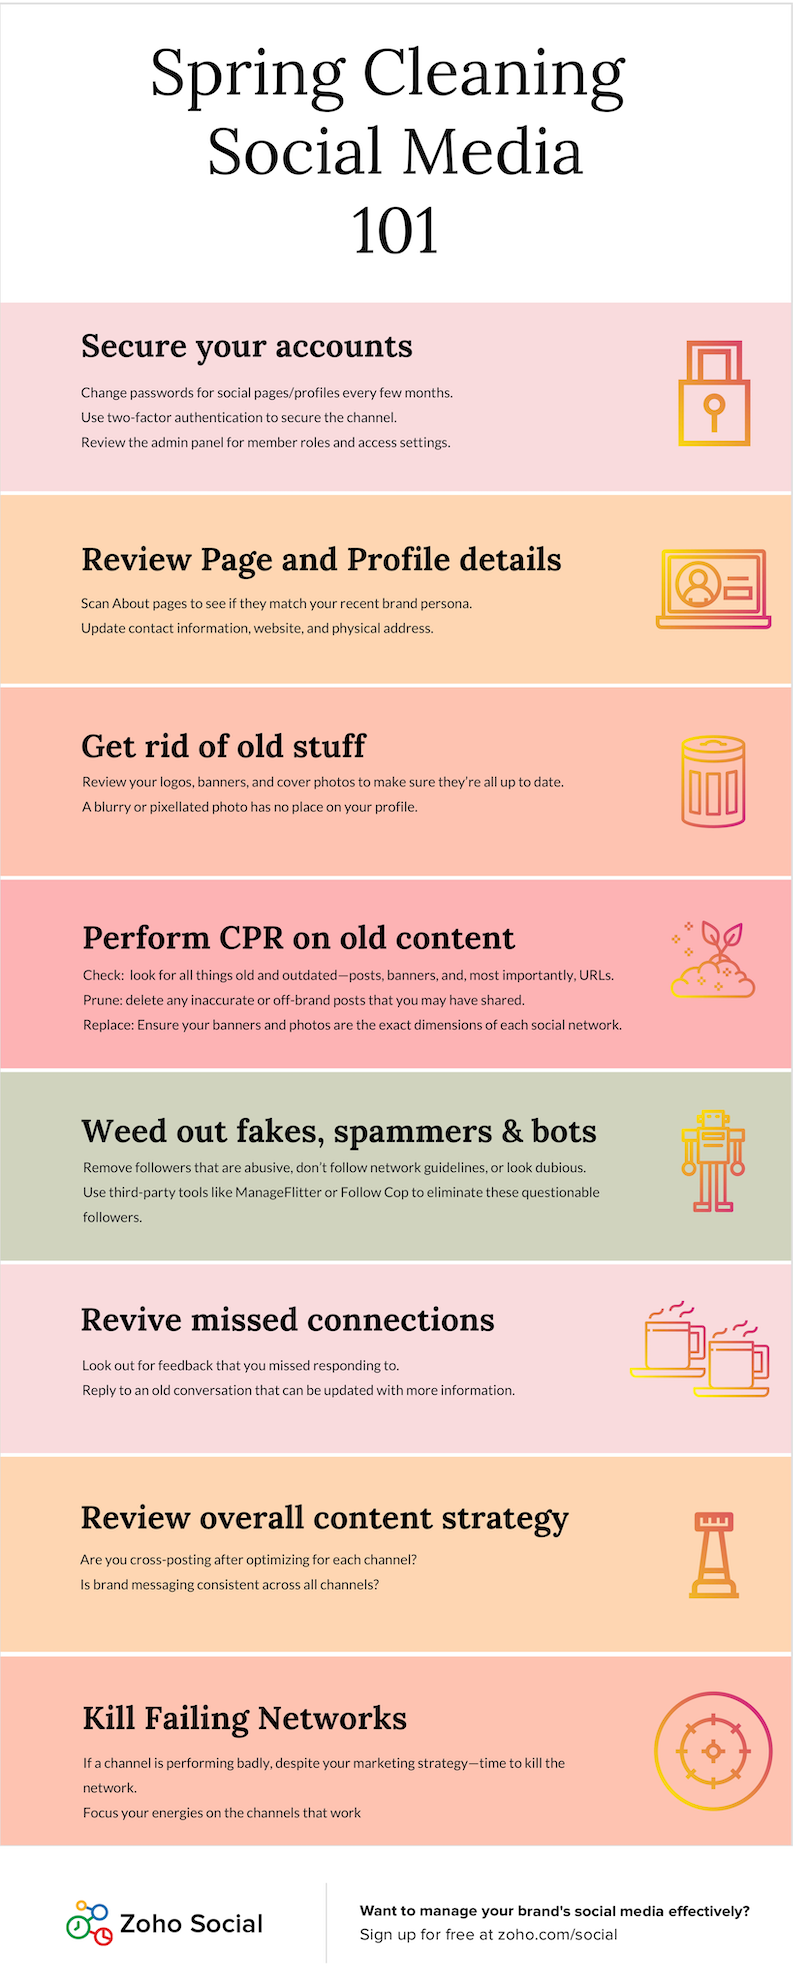 List outlines key points of review for your digital presence